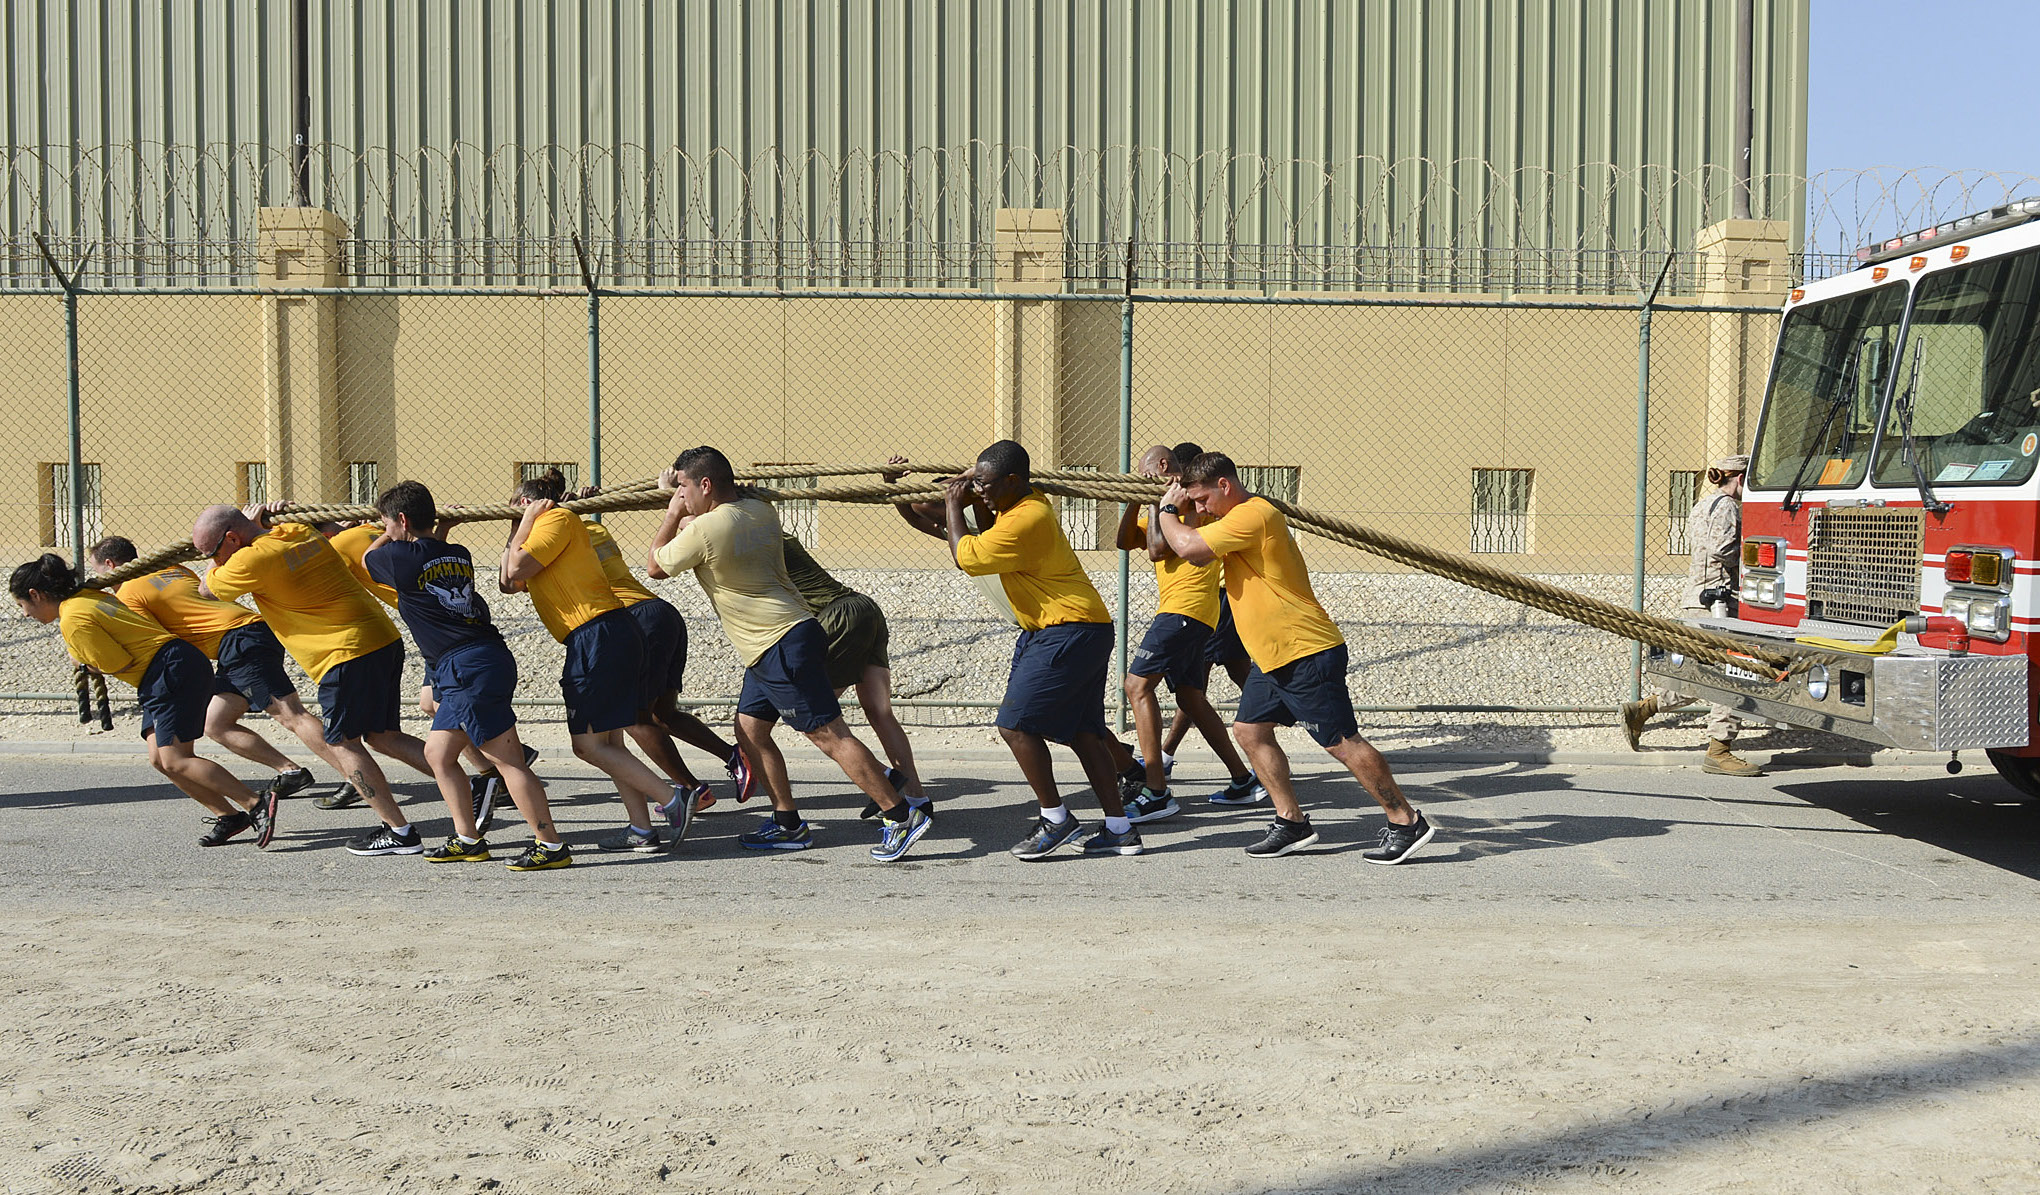 U.S. Sailors, Marines, Soldiers, and Coast Guardsmen stationed aboard Naval Support Activity Bahrain join together in pulling a fire truck during an integrated physical training event. US Navy Photo